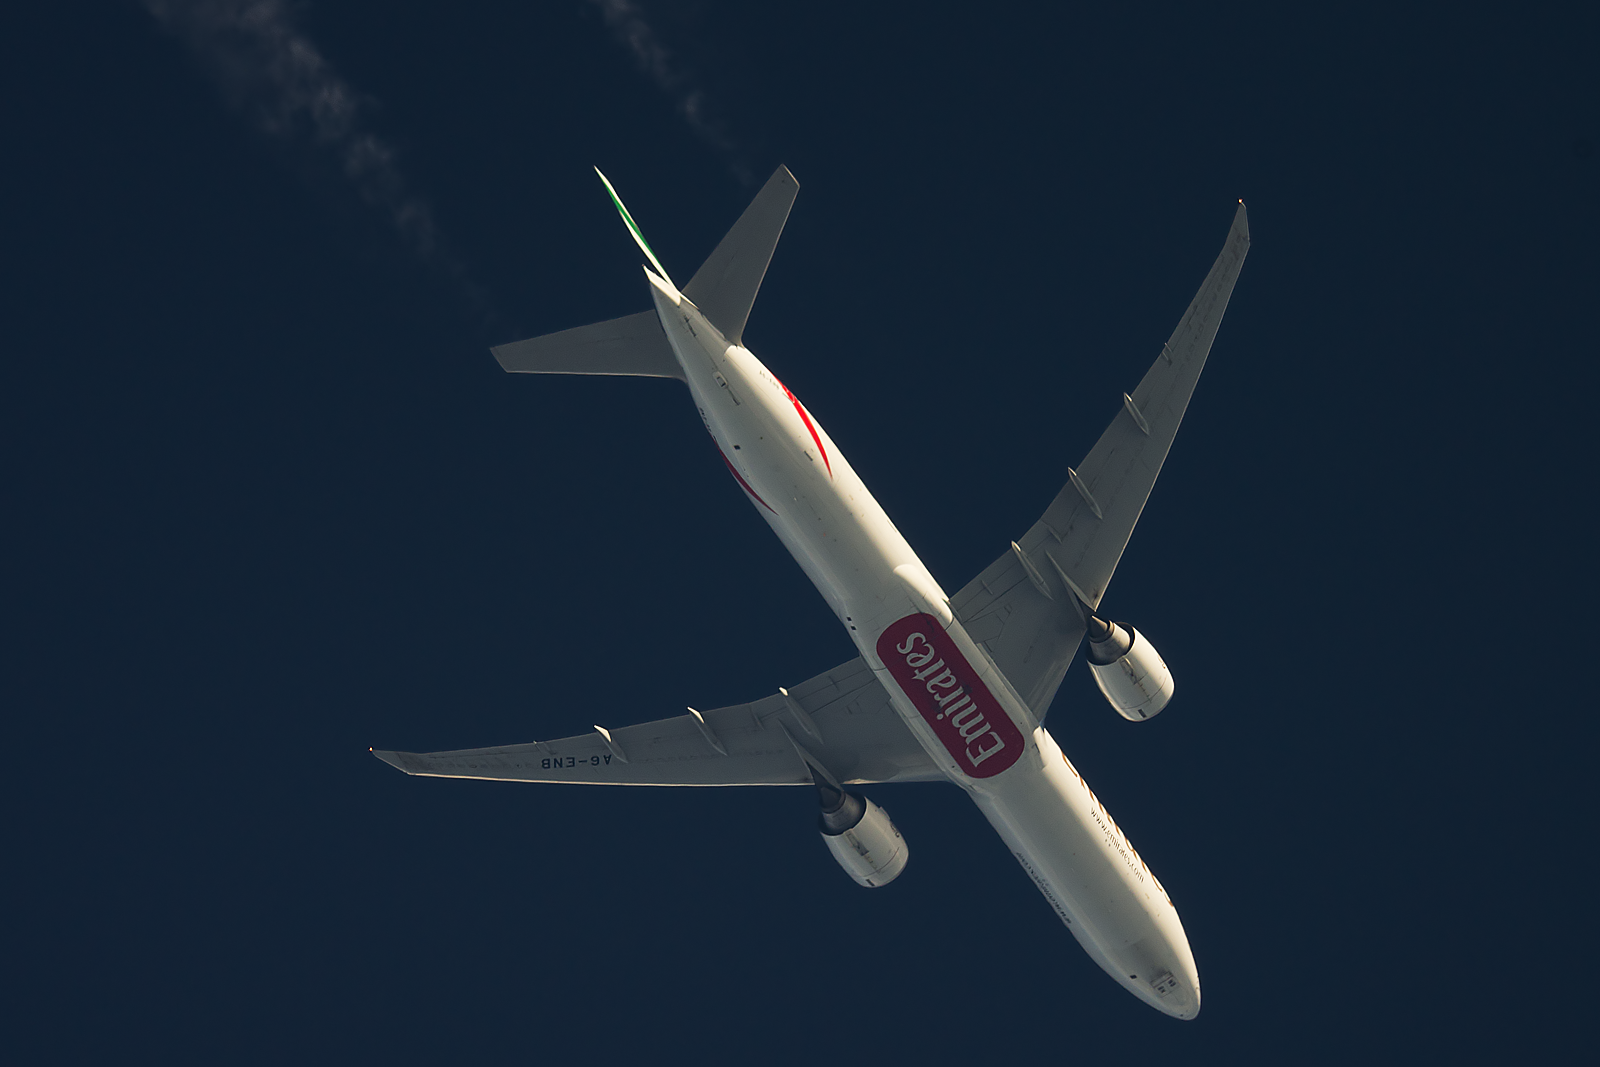 Contrail spotting August 2014 - Aviation24.be